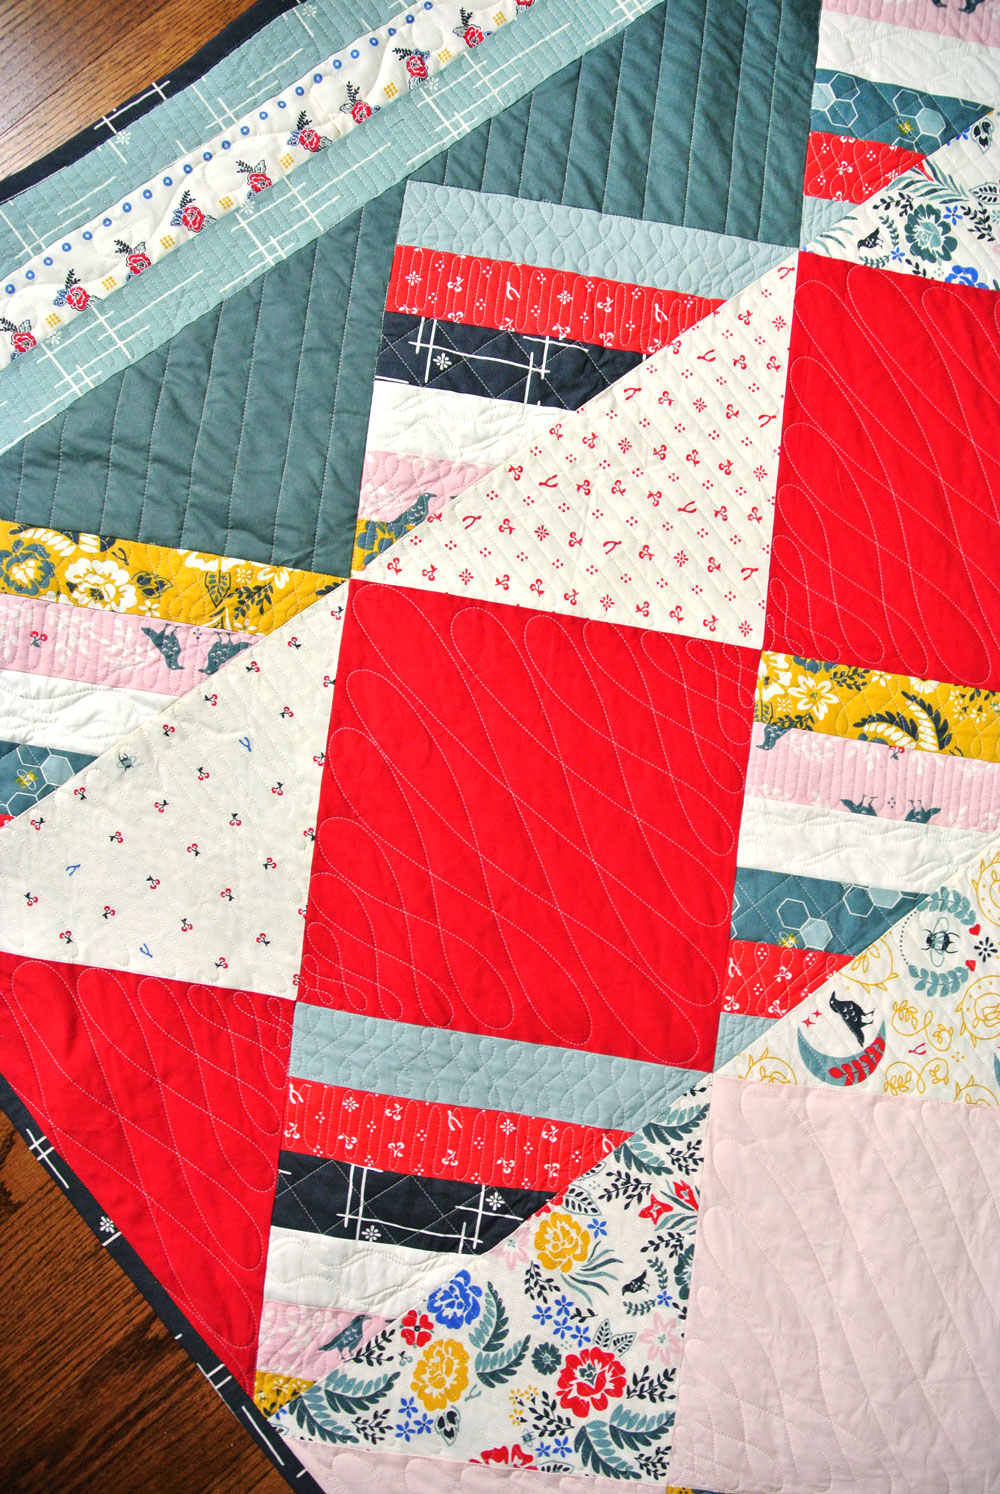 Free Waffle Cone Quilt Pattern | Suzy Quilts https://suzyquilts.com/free-waffle-cone-quilt-pattern